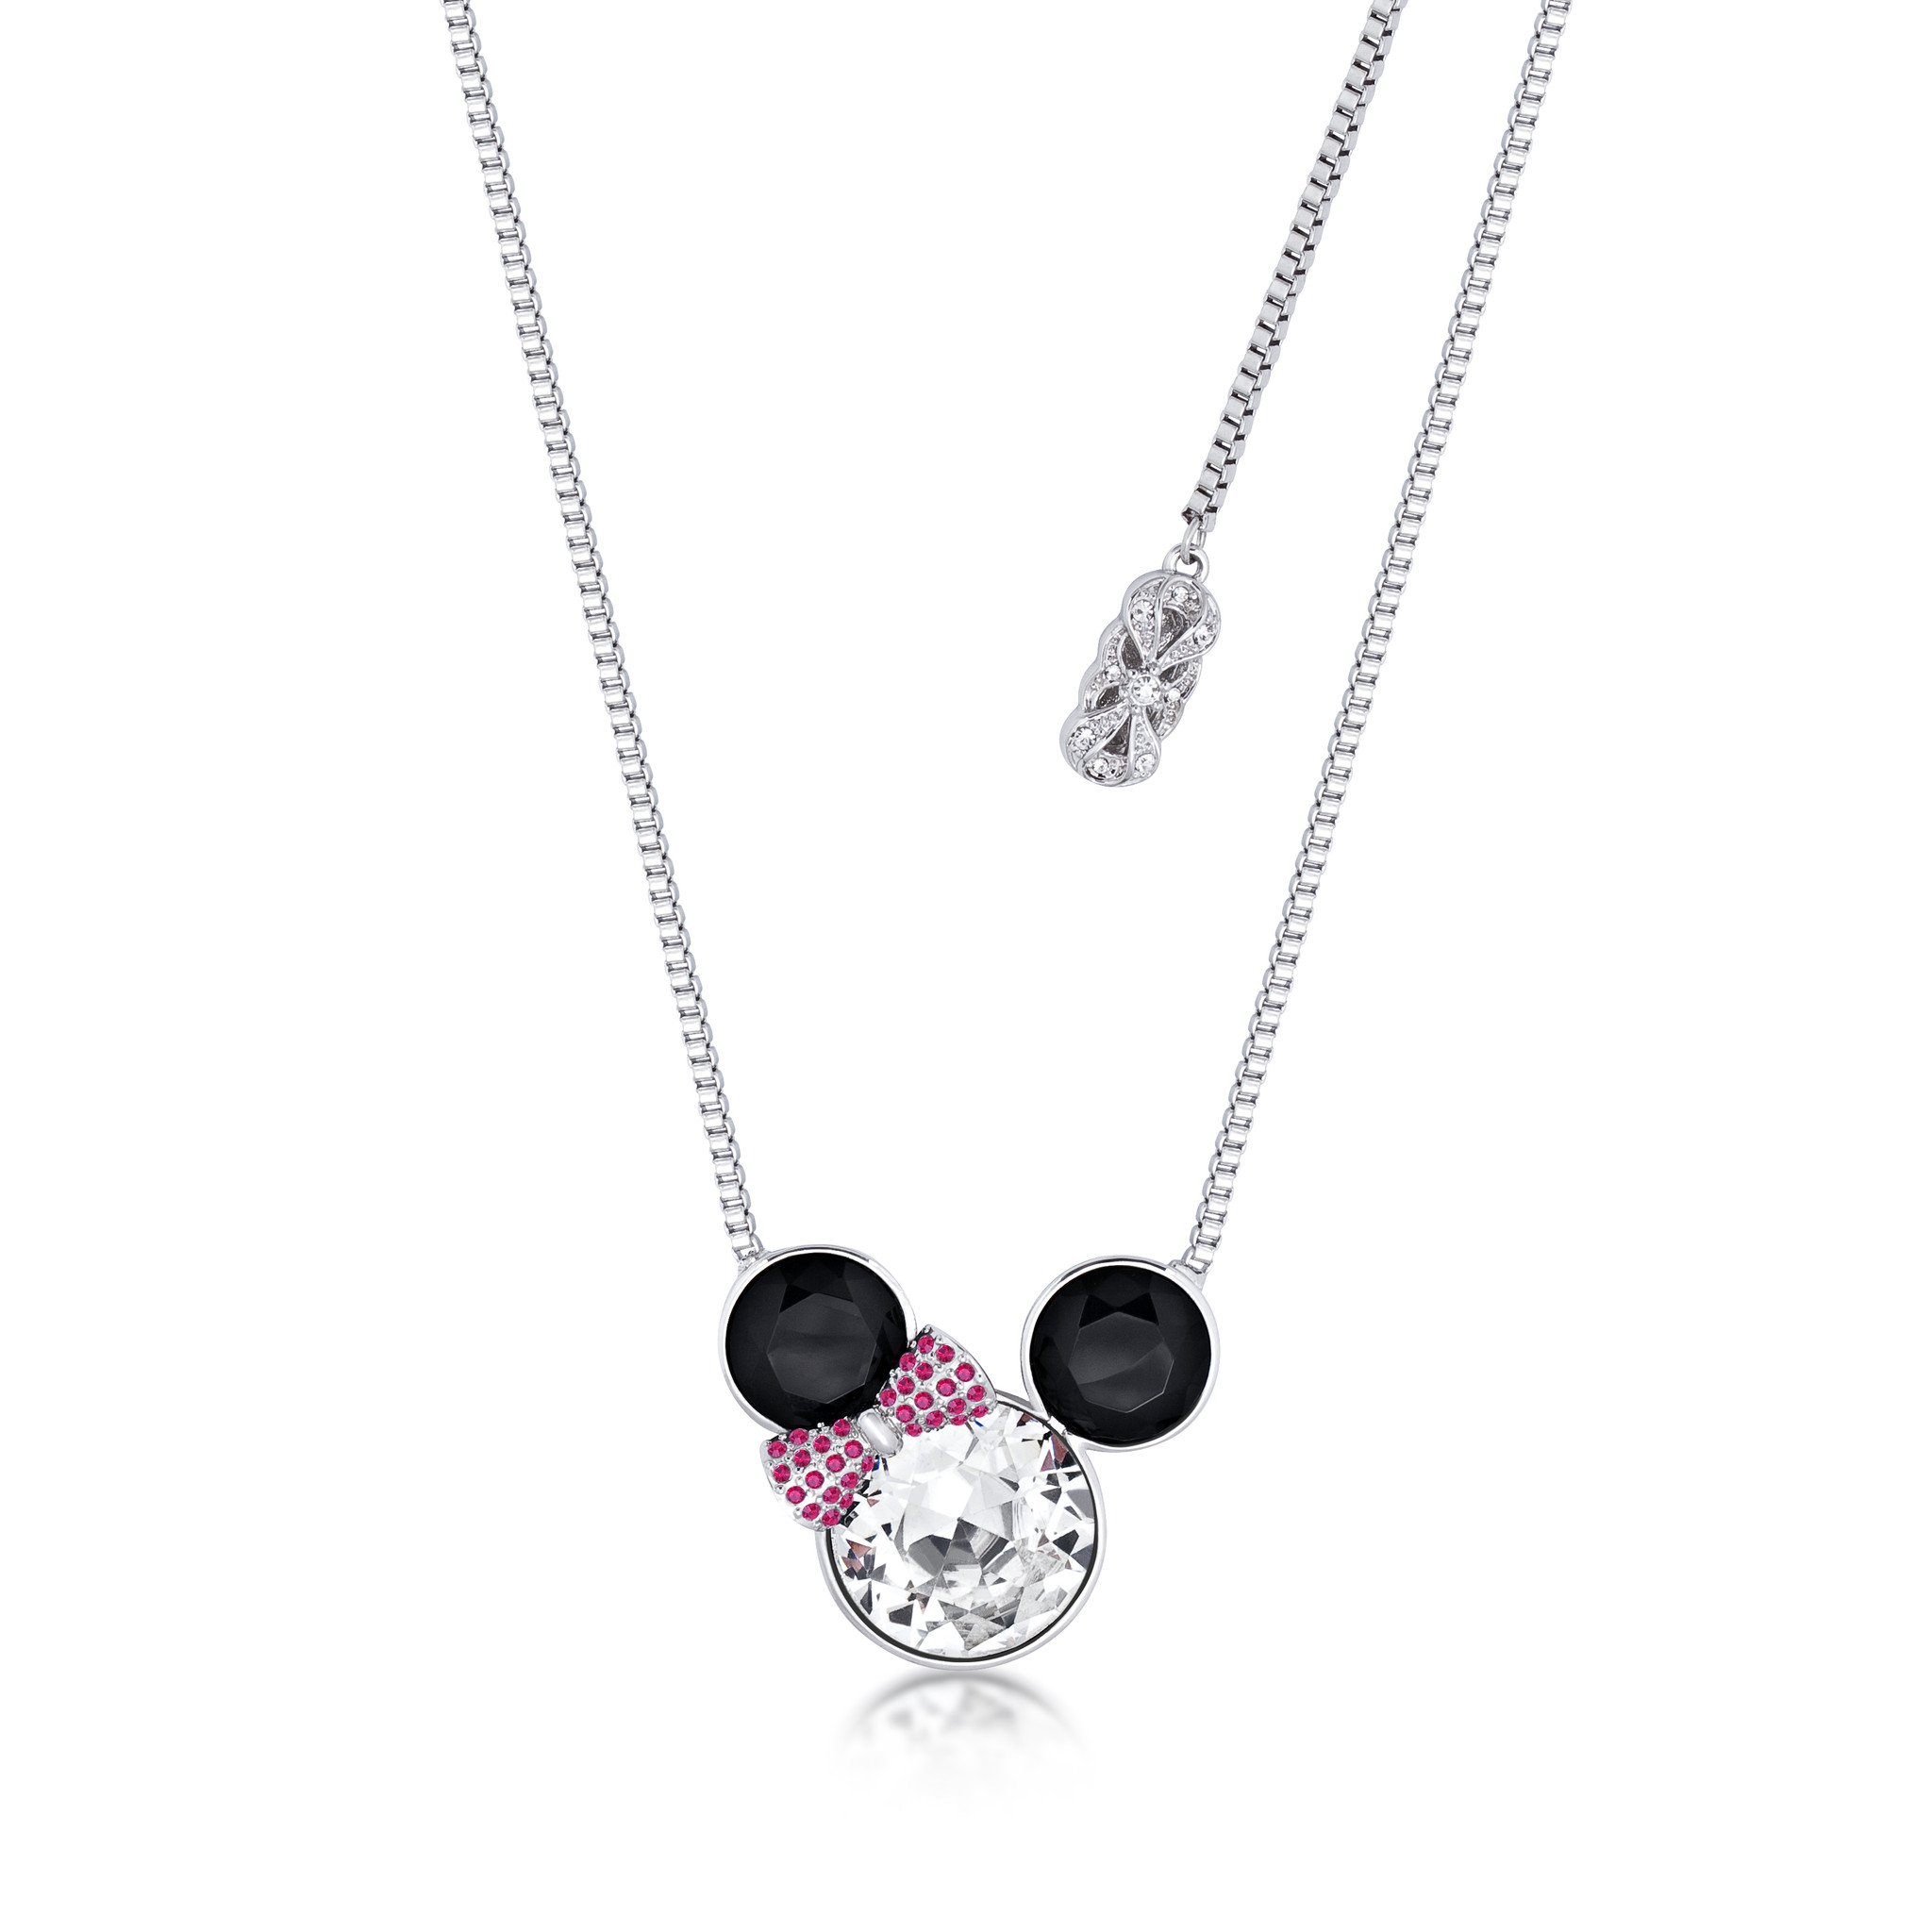 2048x2048 Disney Minnie Mouse Bow Crystal Necklace Couture Kingdom